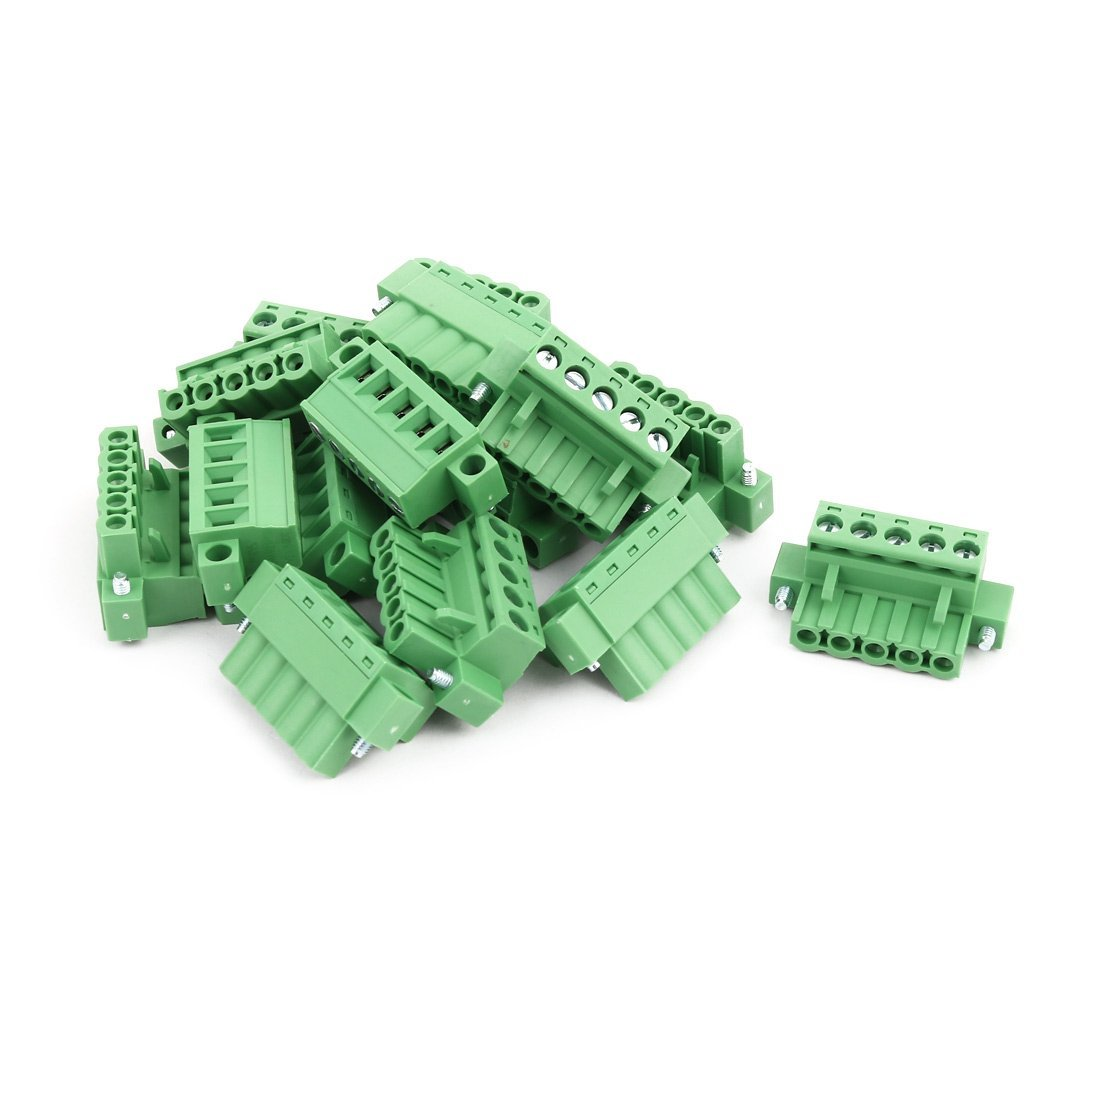 uxcell 15Pcs AC 300V 15A 5.0mm Pitch 5P Terminal Block Wire Connection for PCB Mounting